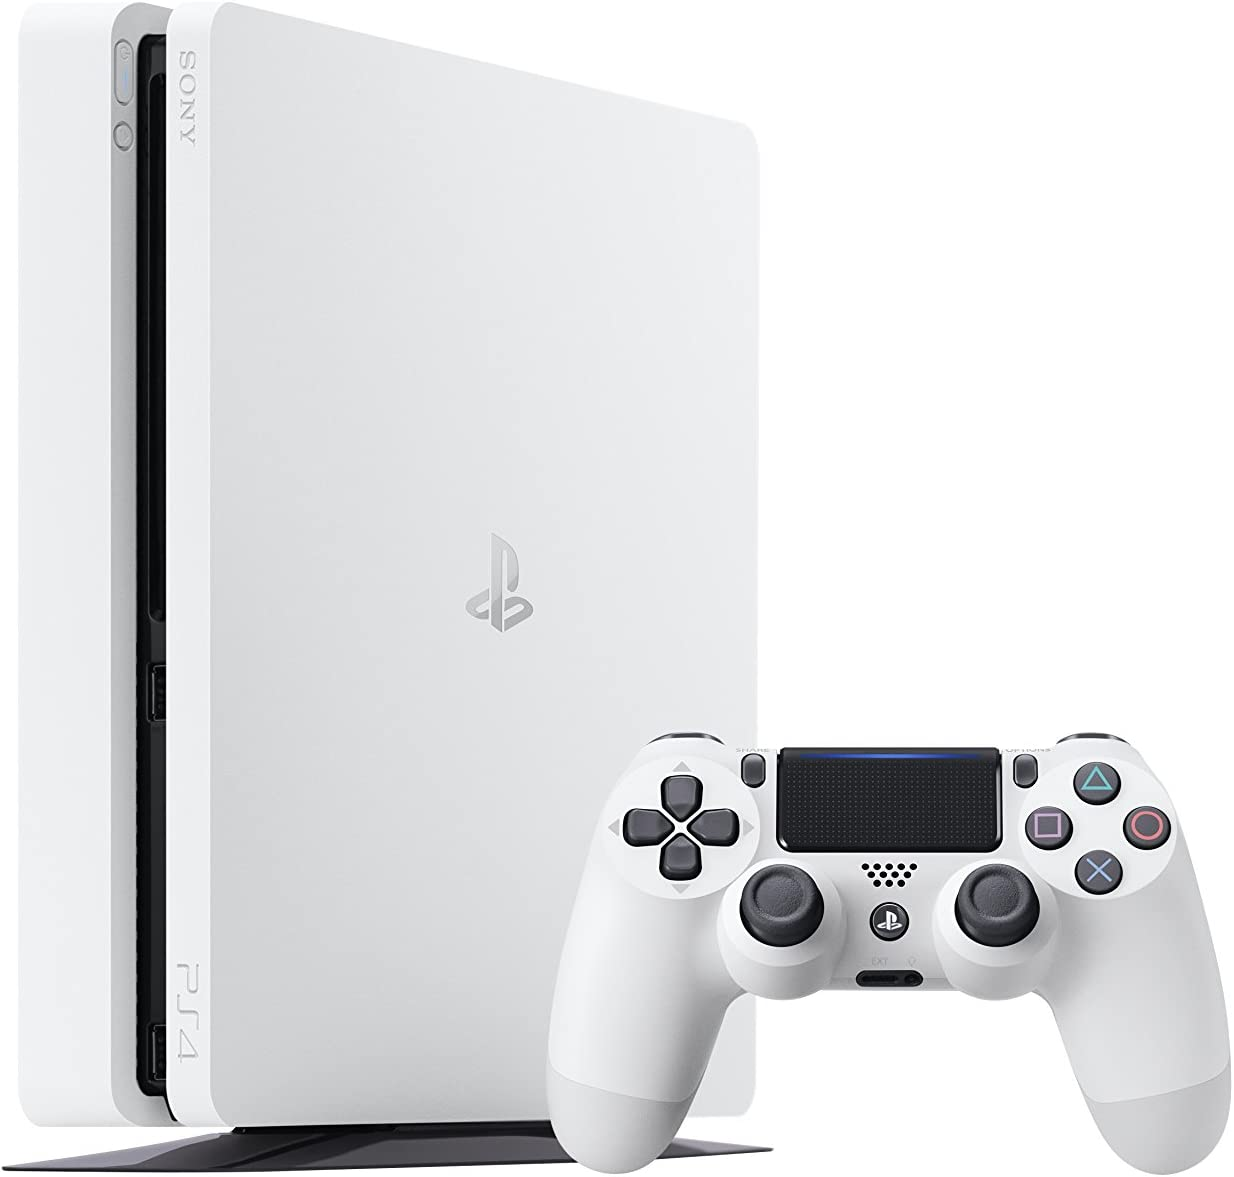 PS4 Slim 500Gb Blanca Playstation 4 Consola - Pack 2 Juegos - FIFA 17 + GTA V: Amazon.es: Videojuegos